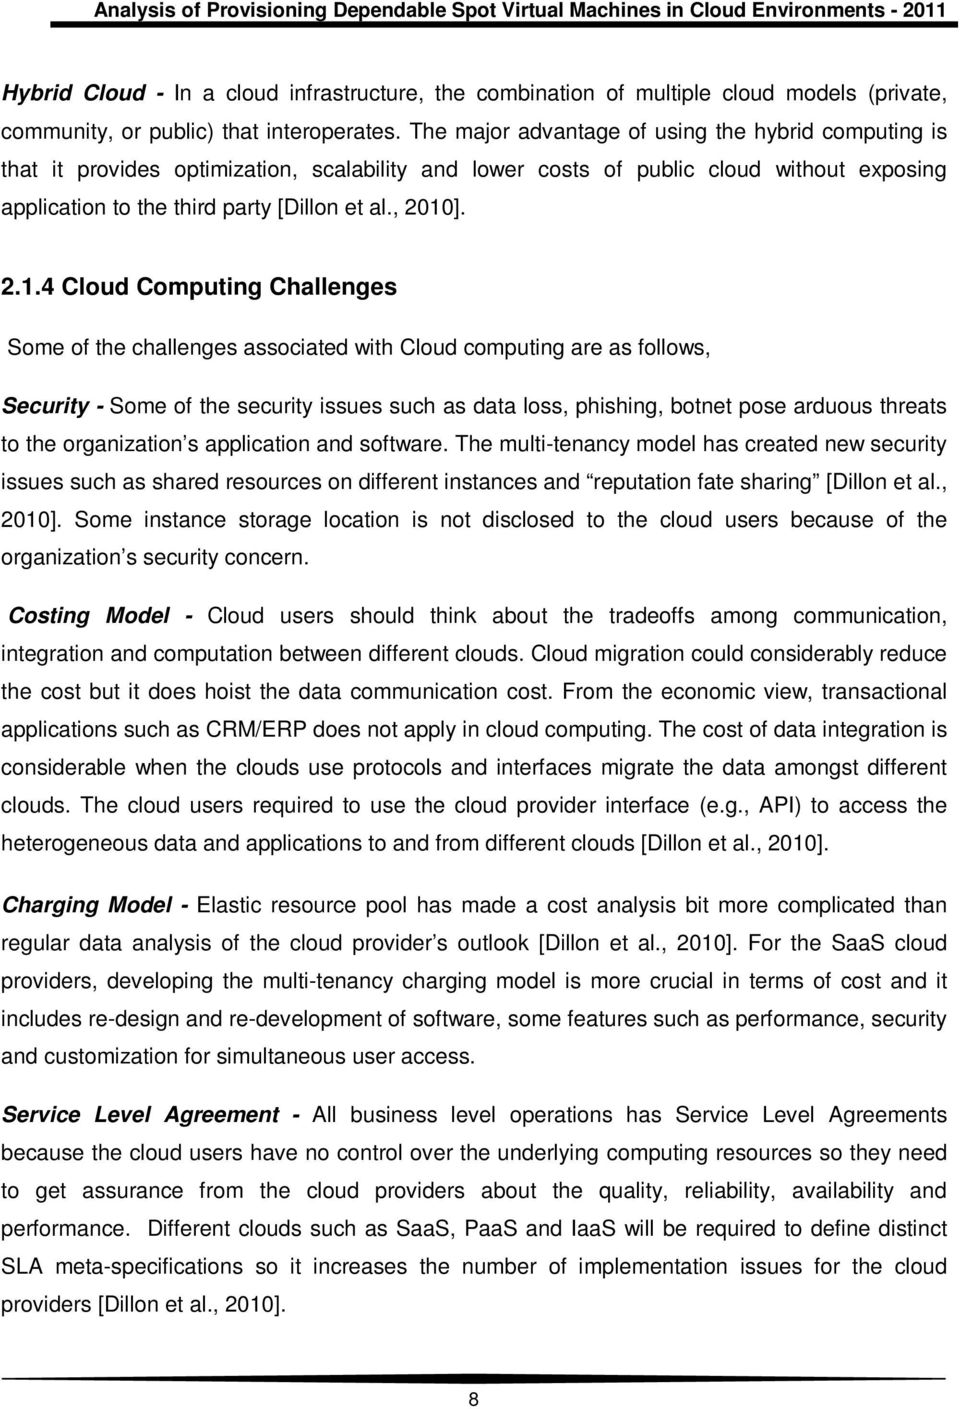 2.1.4 Cloud Computing Challenges Some of the challenges associated with Cloud computing are as follows, Security - Some of the security issues such as data loss, phishing, botnet pose arduous threats